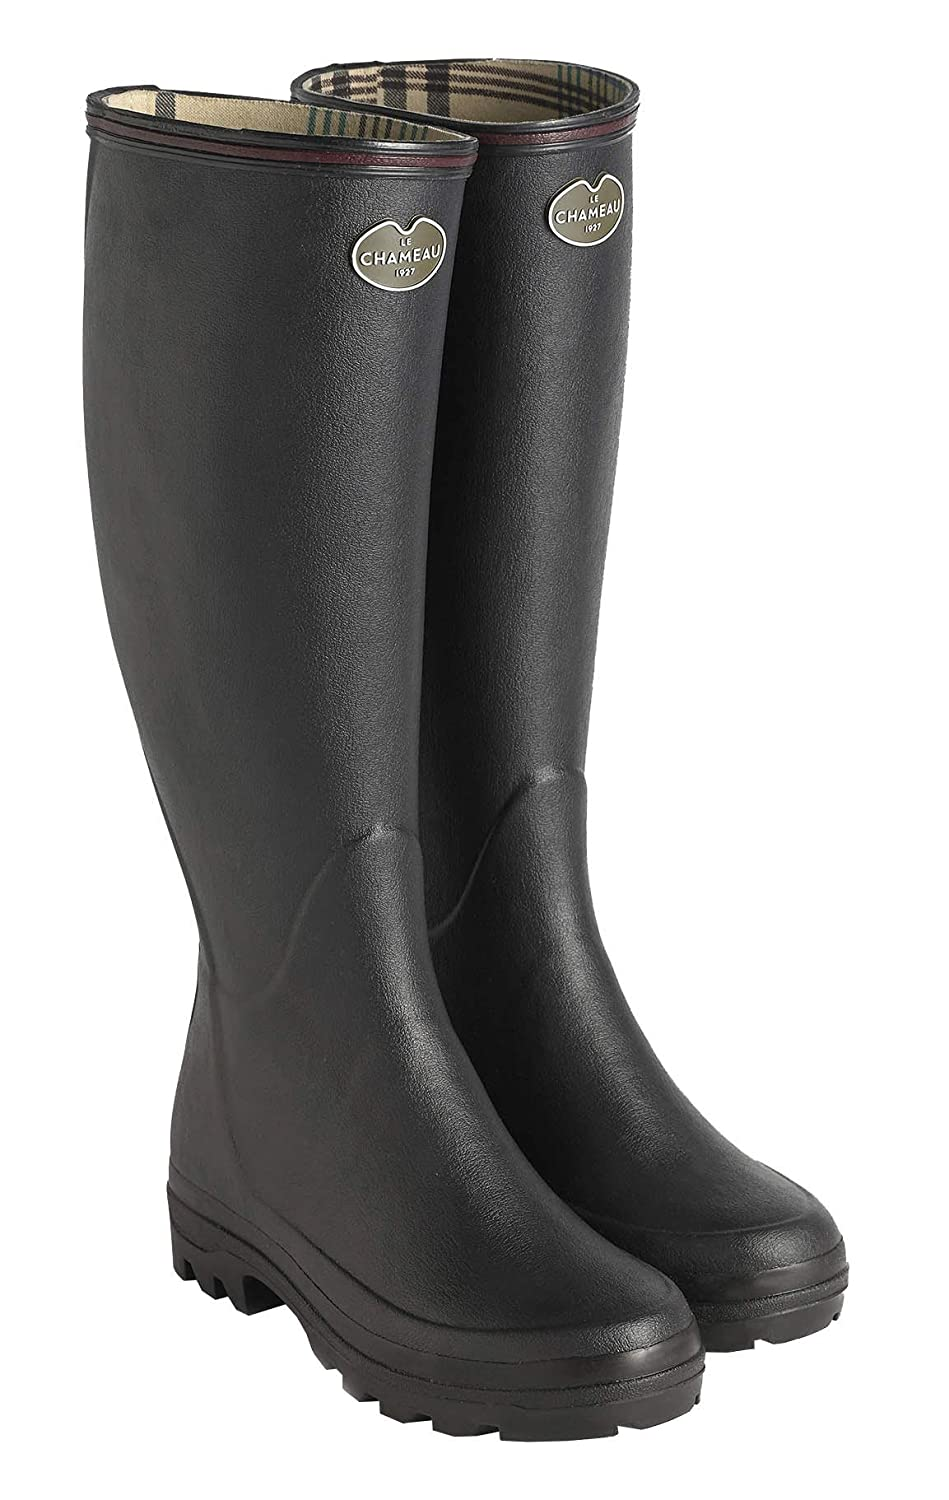 - LE CHAMEAU 1927 Women's Giverny Jersey Lined Boot - US 10